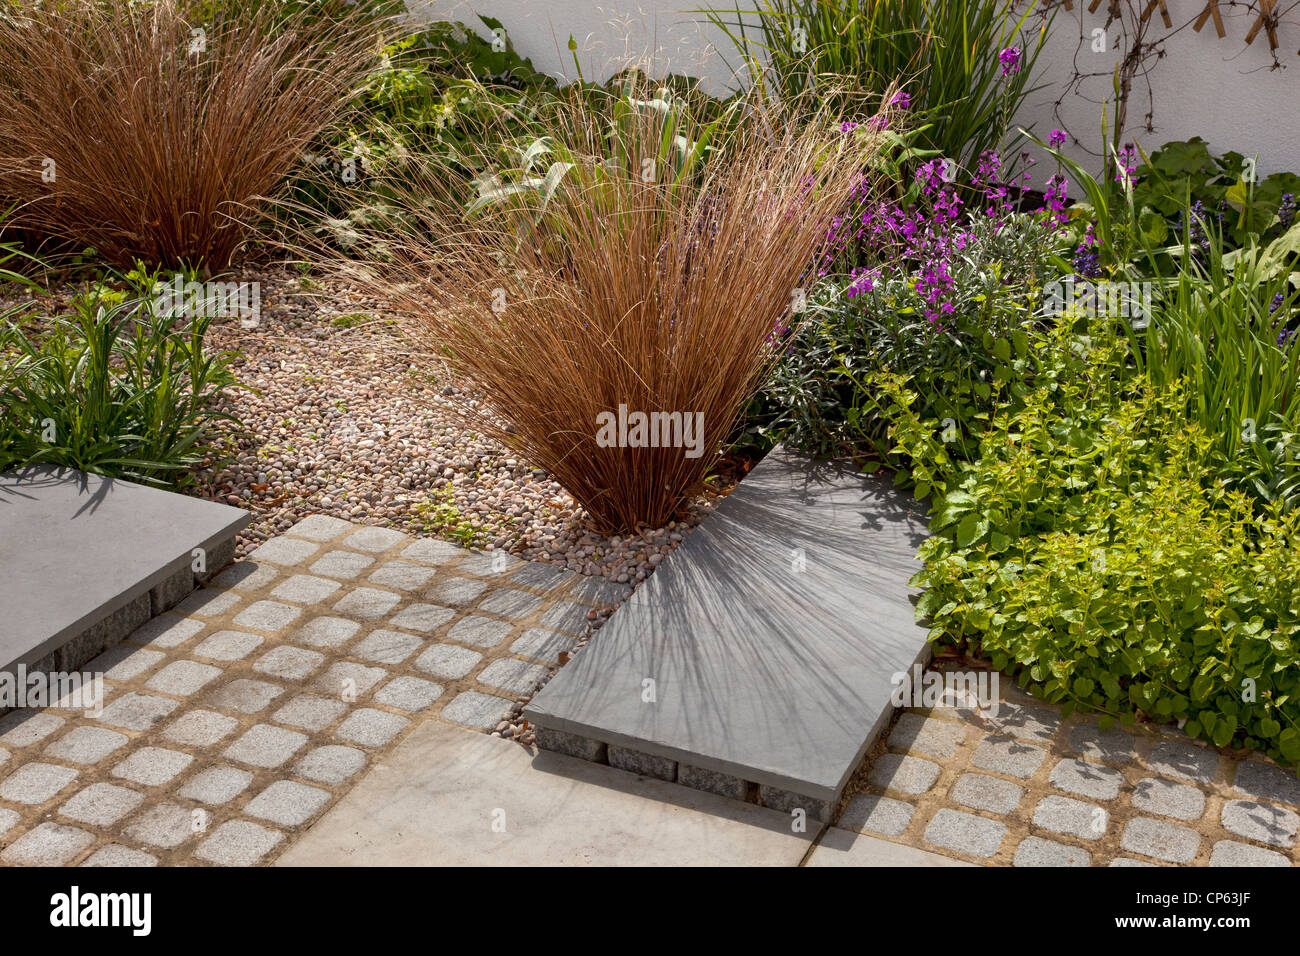 Contemporary Modern Garden With Gravel And Grasses Stone And Slate Path